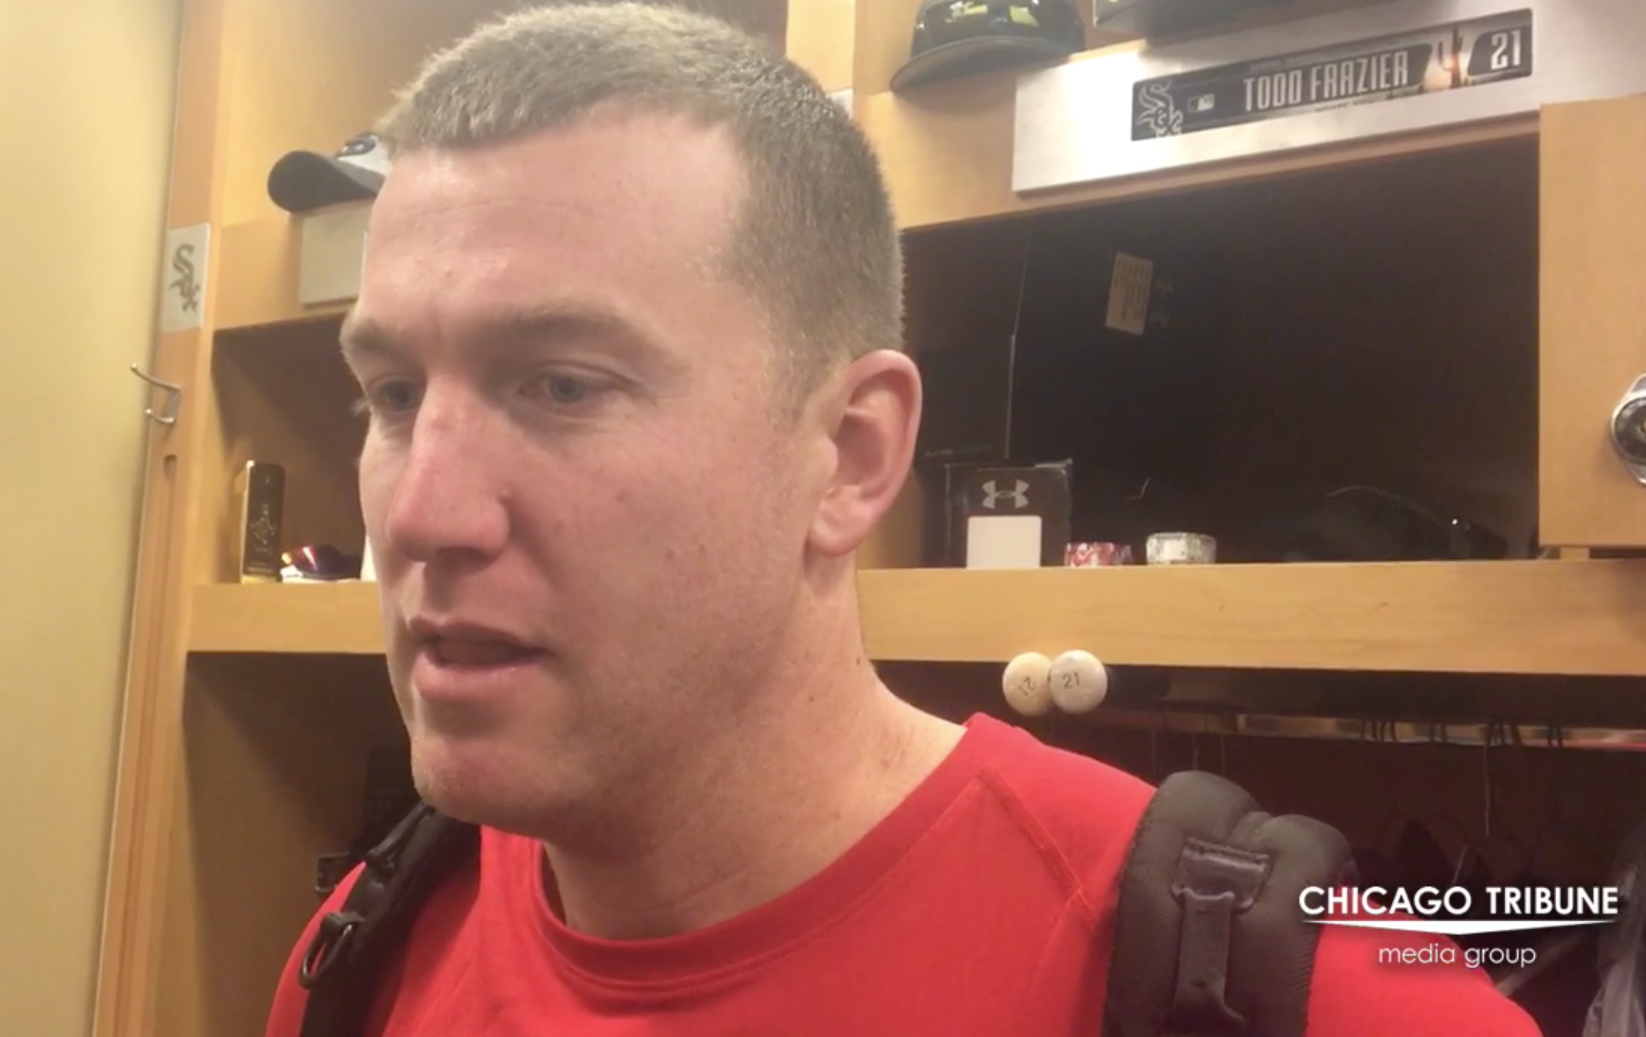 Ct-todd-frazier-soreness-left-side-20170222